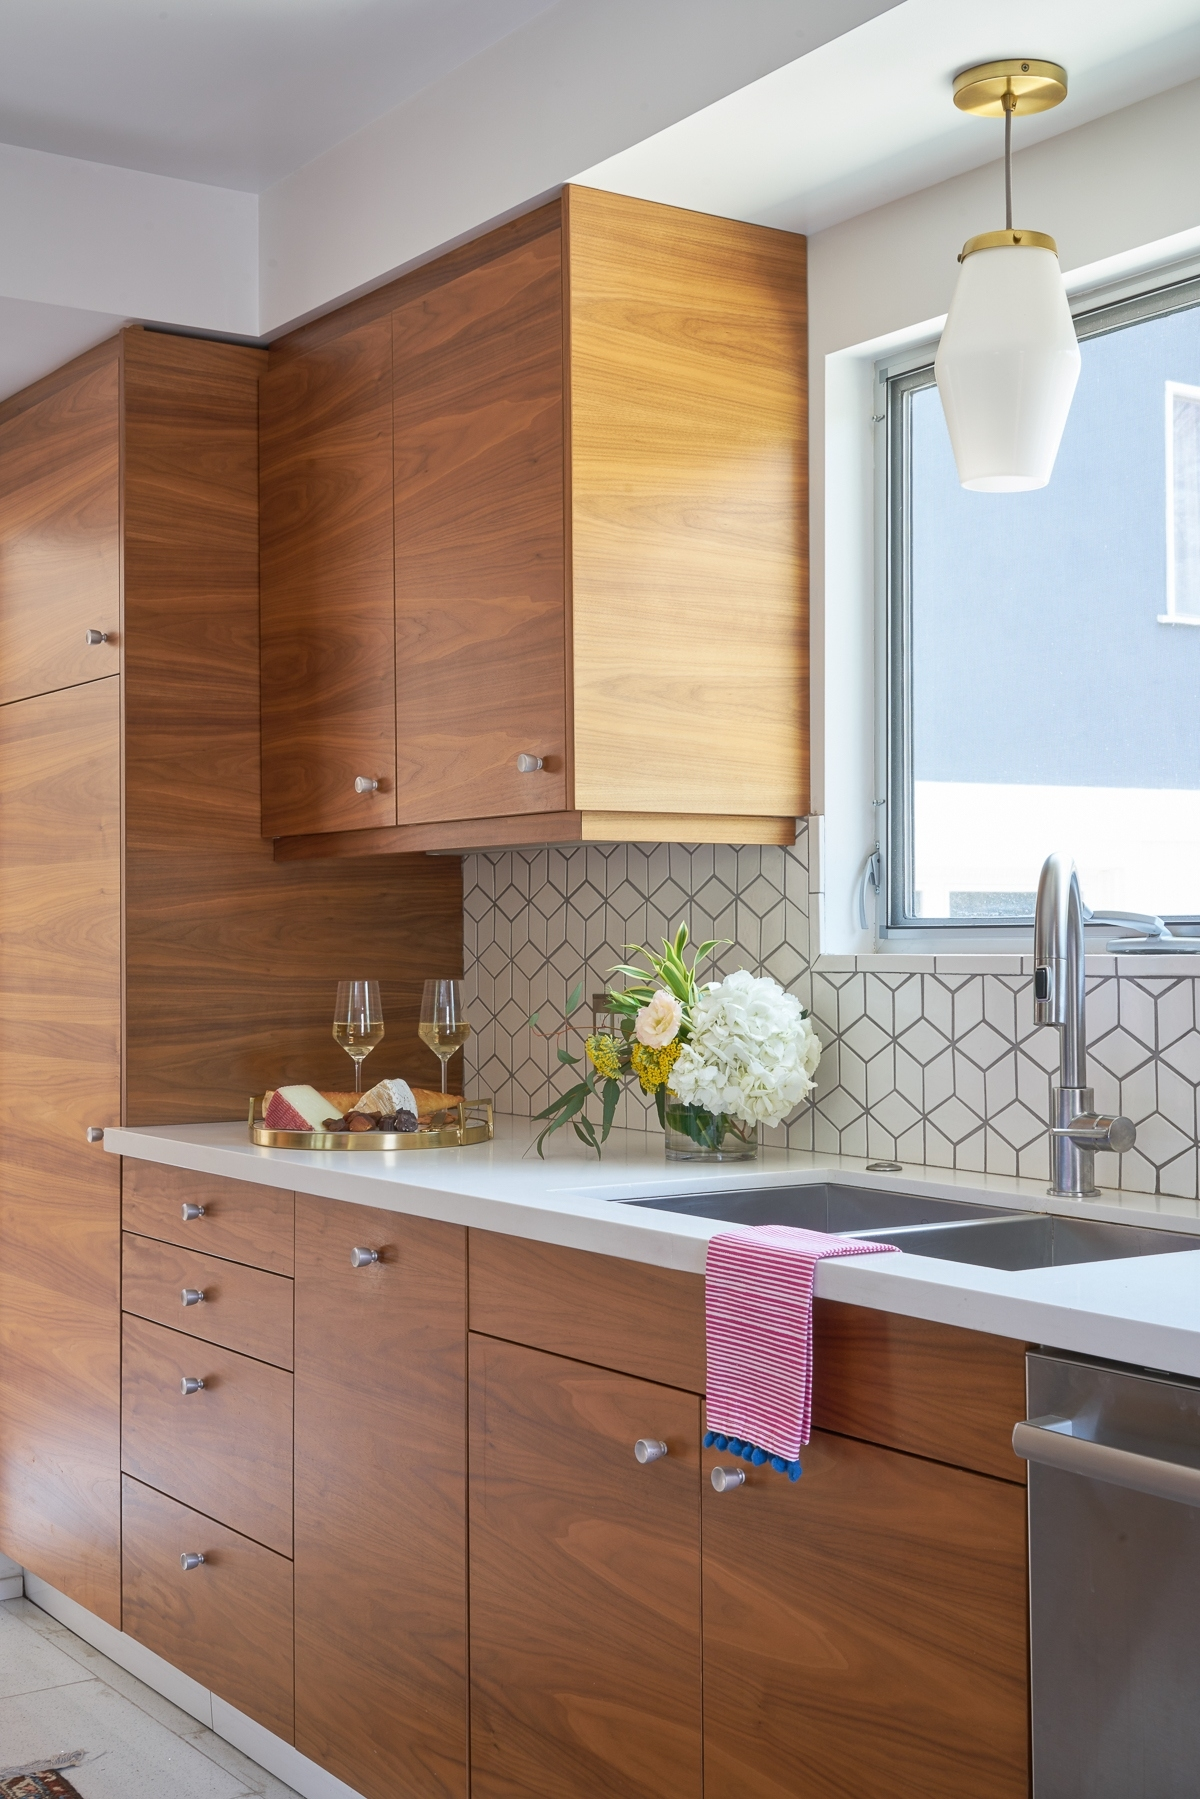 Buying Kitchen Cabinets At Ikea - Kitchen and Bath